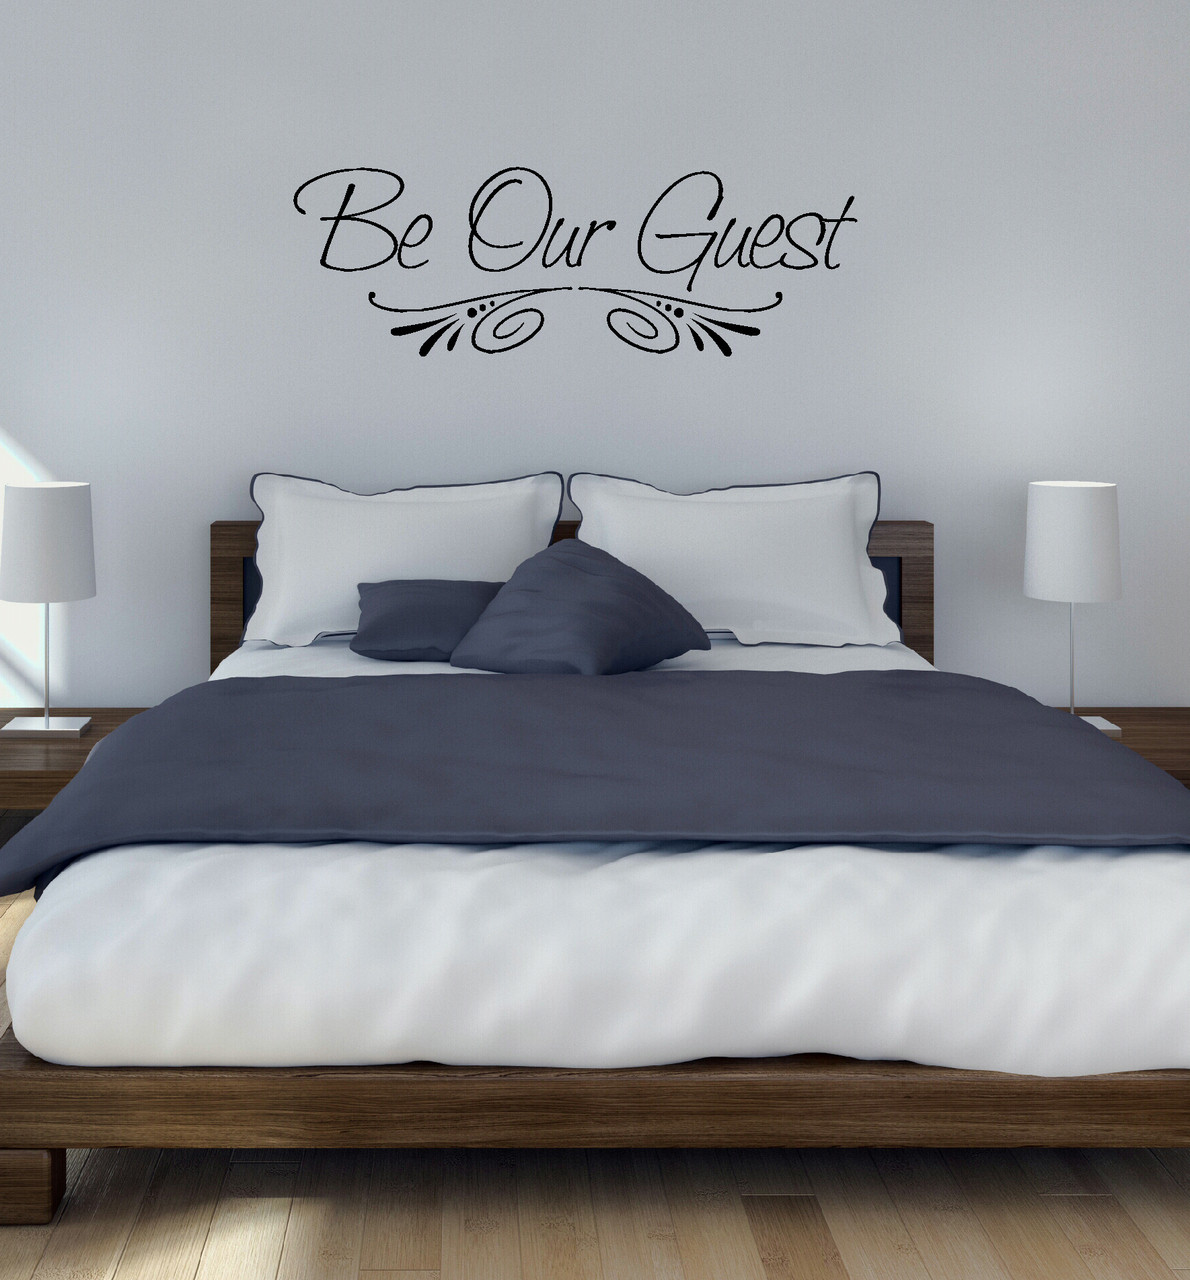 Guest Room Wall Decal Sticker For Wall Decor Black